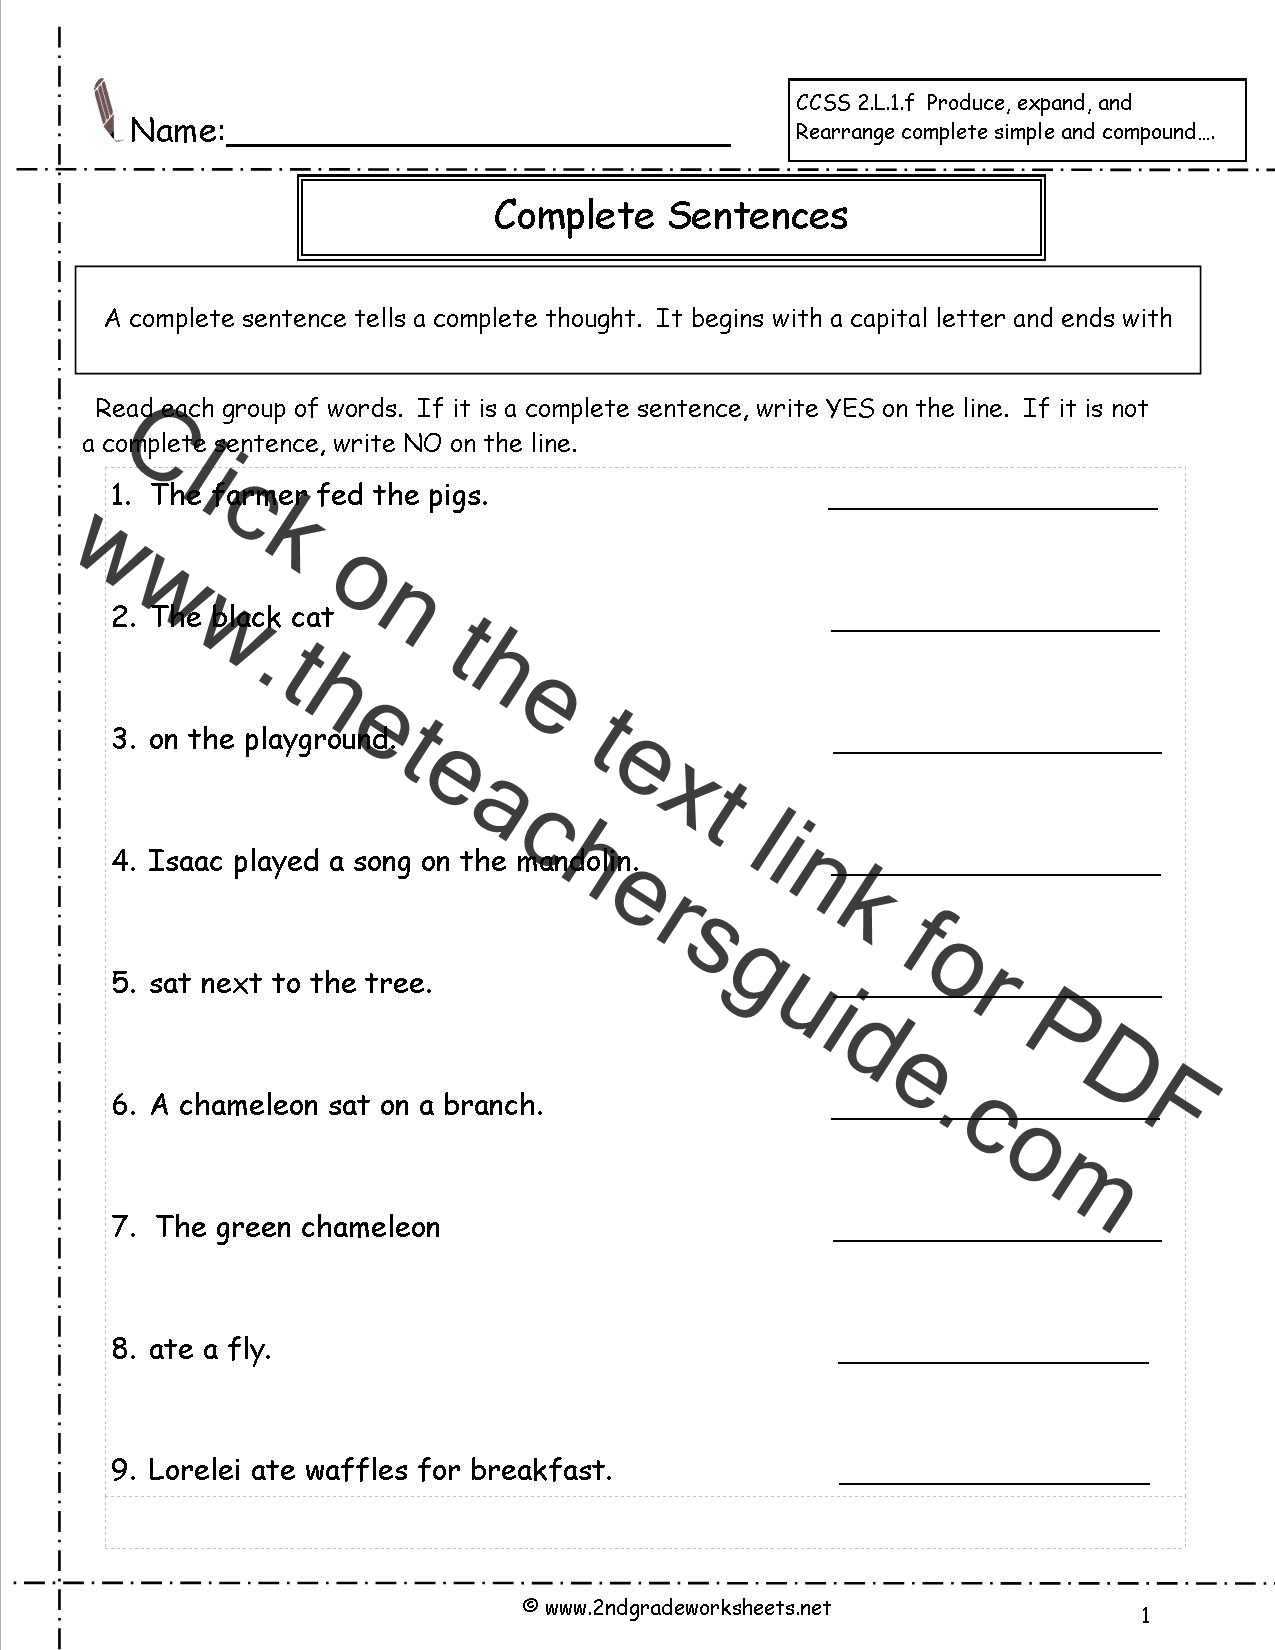 Second Grade Sentences Worksheets CCSS 2L1f Worksheets – Compound Complex Sentence Worksheet